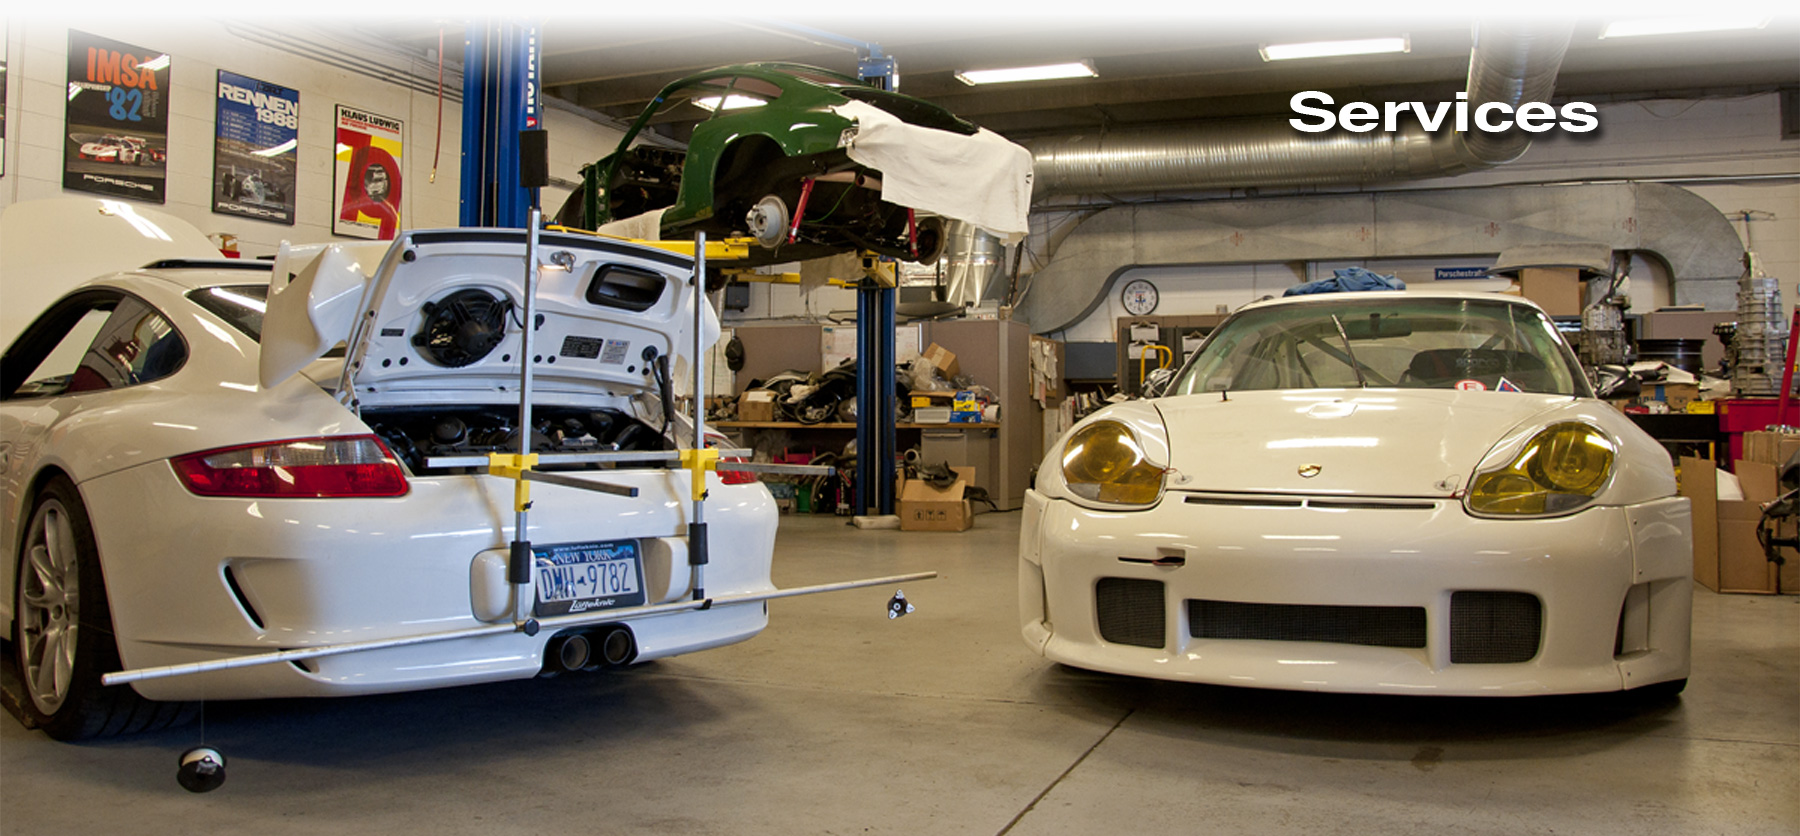 Lüfteknic services header showing a 997 GT3, 912 and 996 RSR being worked on inside Lüfteknic.